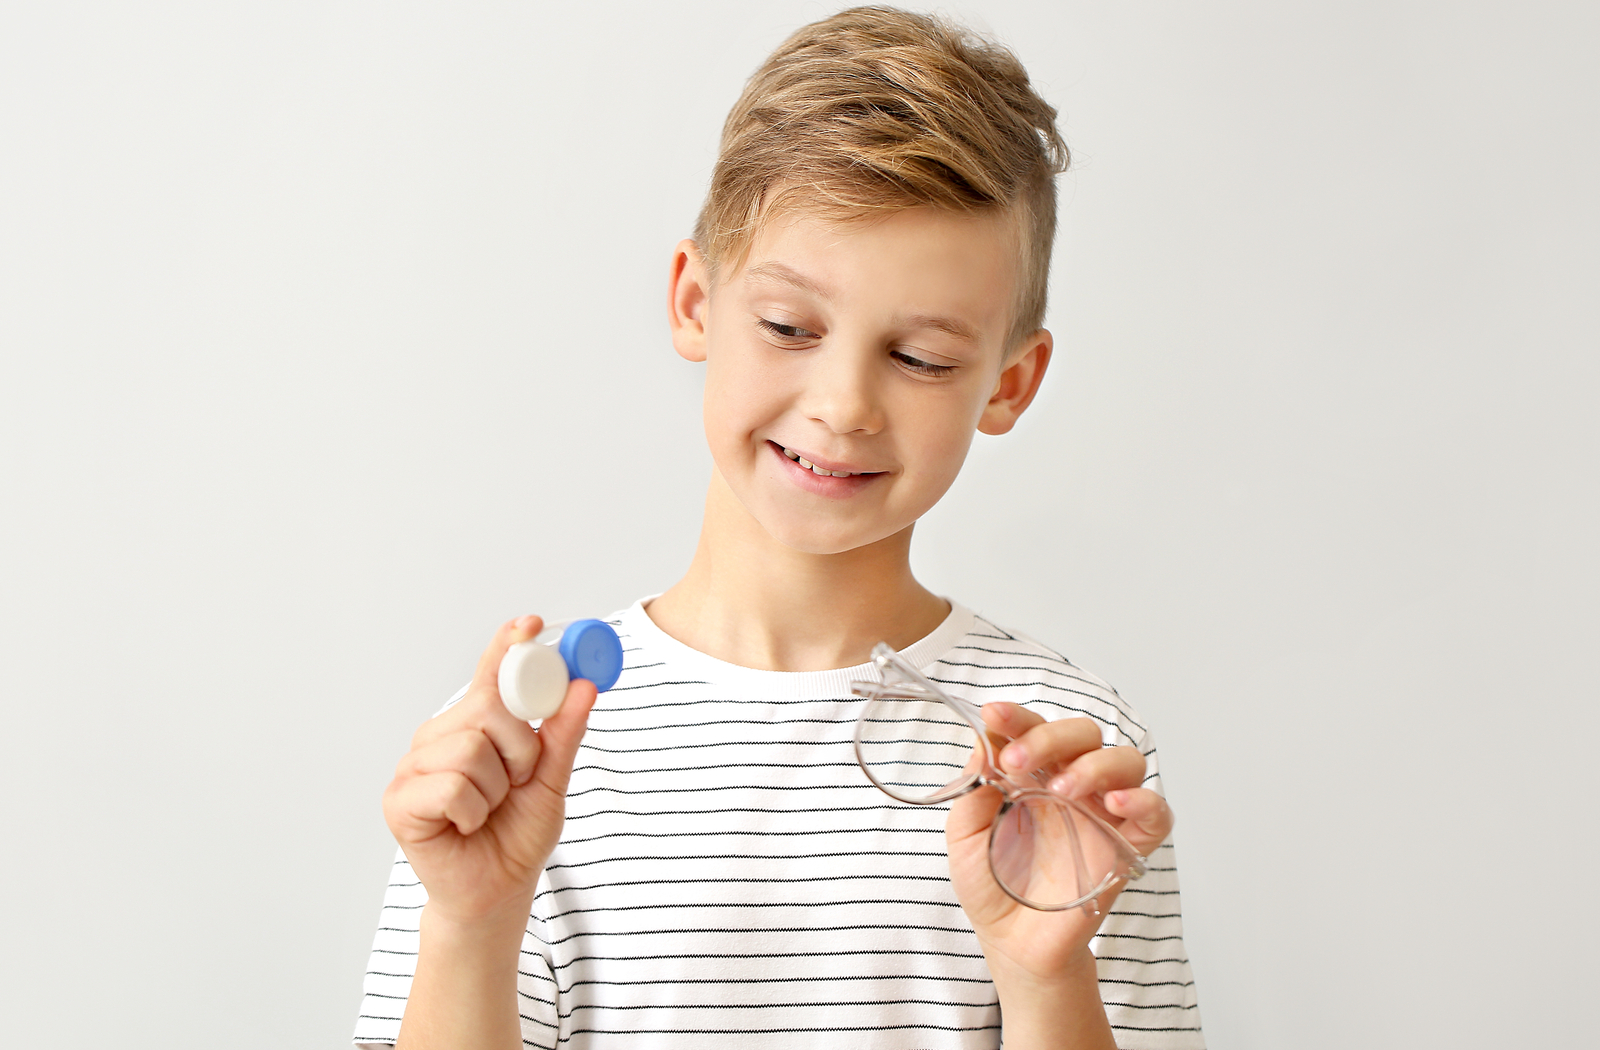 Child smiling and looking at the contact lenses he's holding next to glasses